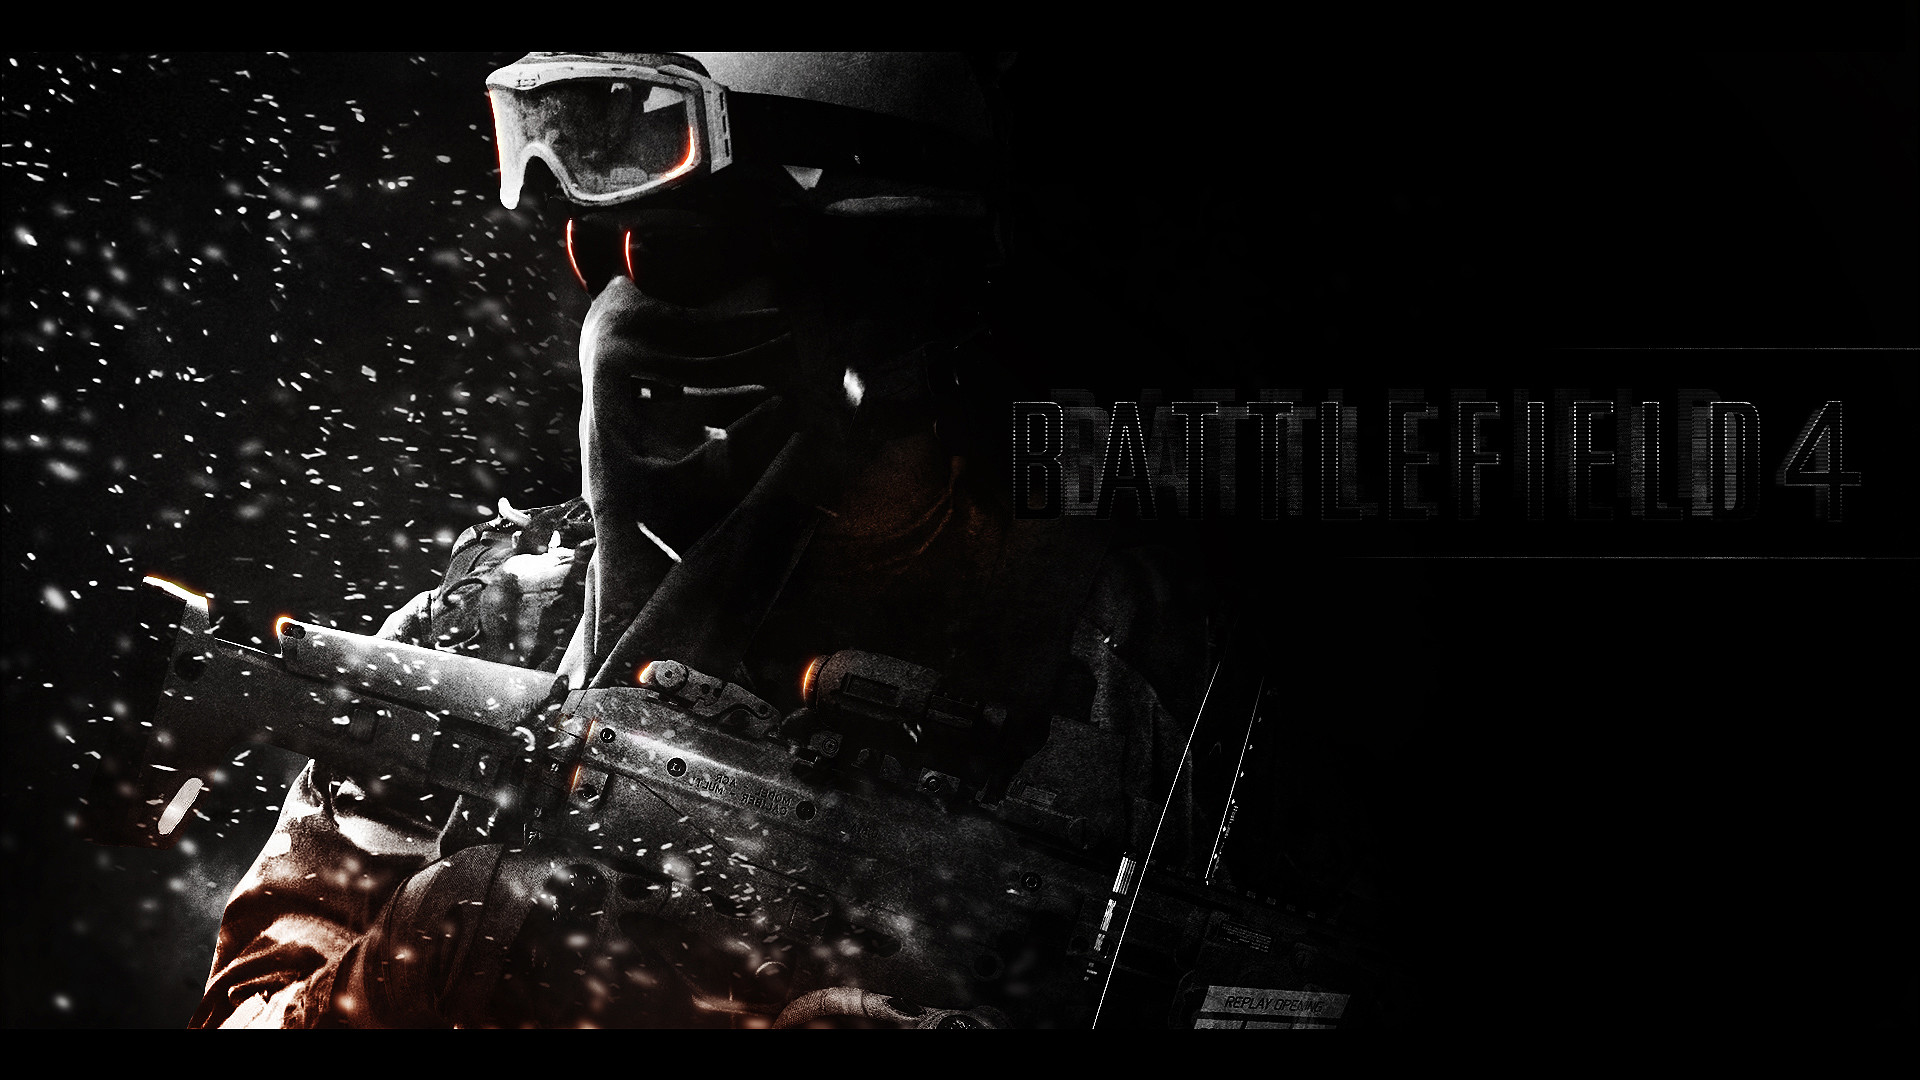 1920x1080 Battlefield 4 HD Wallpapers – Battlefield – PS3 Games wallpapers – HD – #4